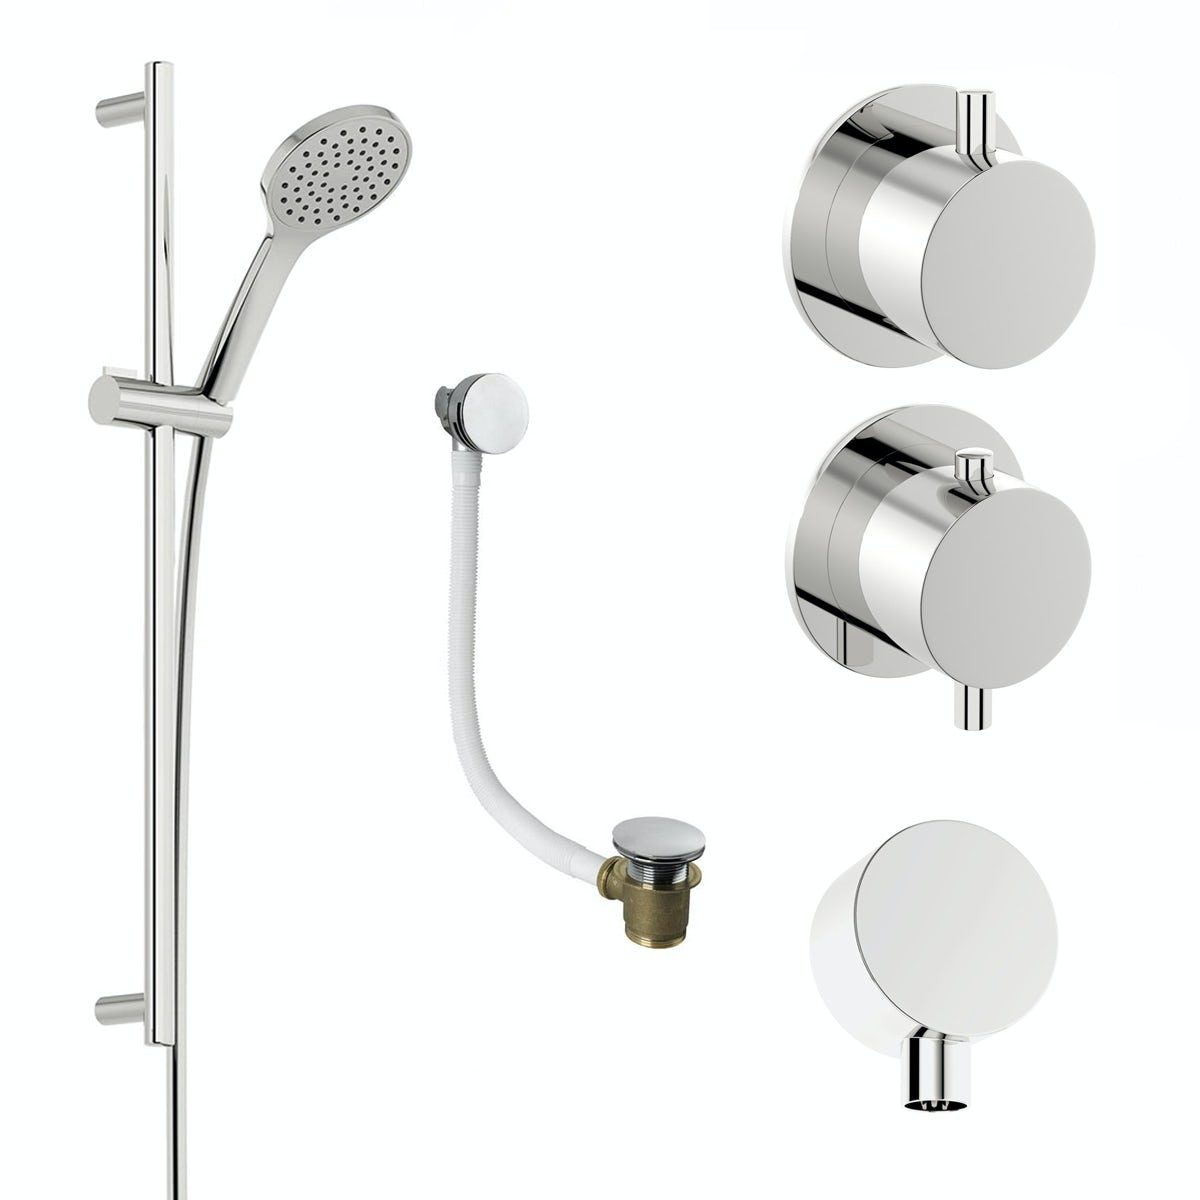 Mode Hardy thermostatic shower valve and slider rail shower bath set